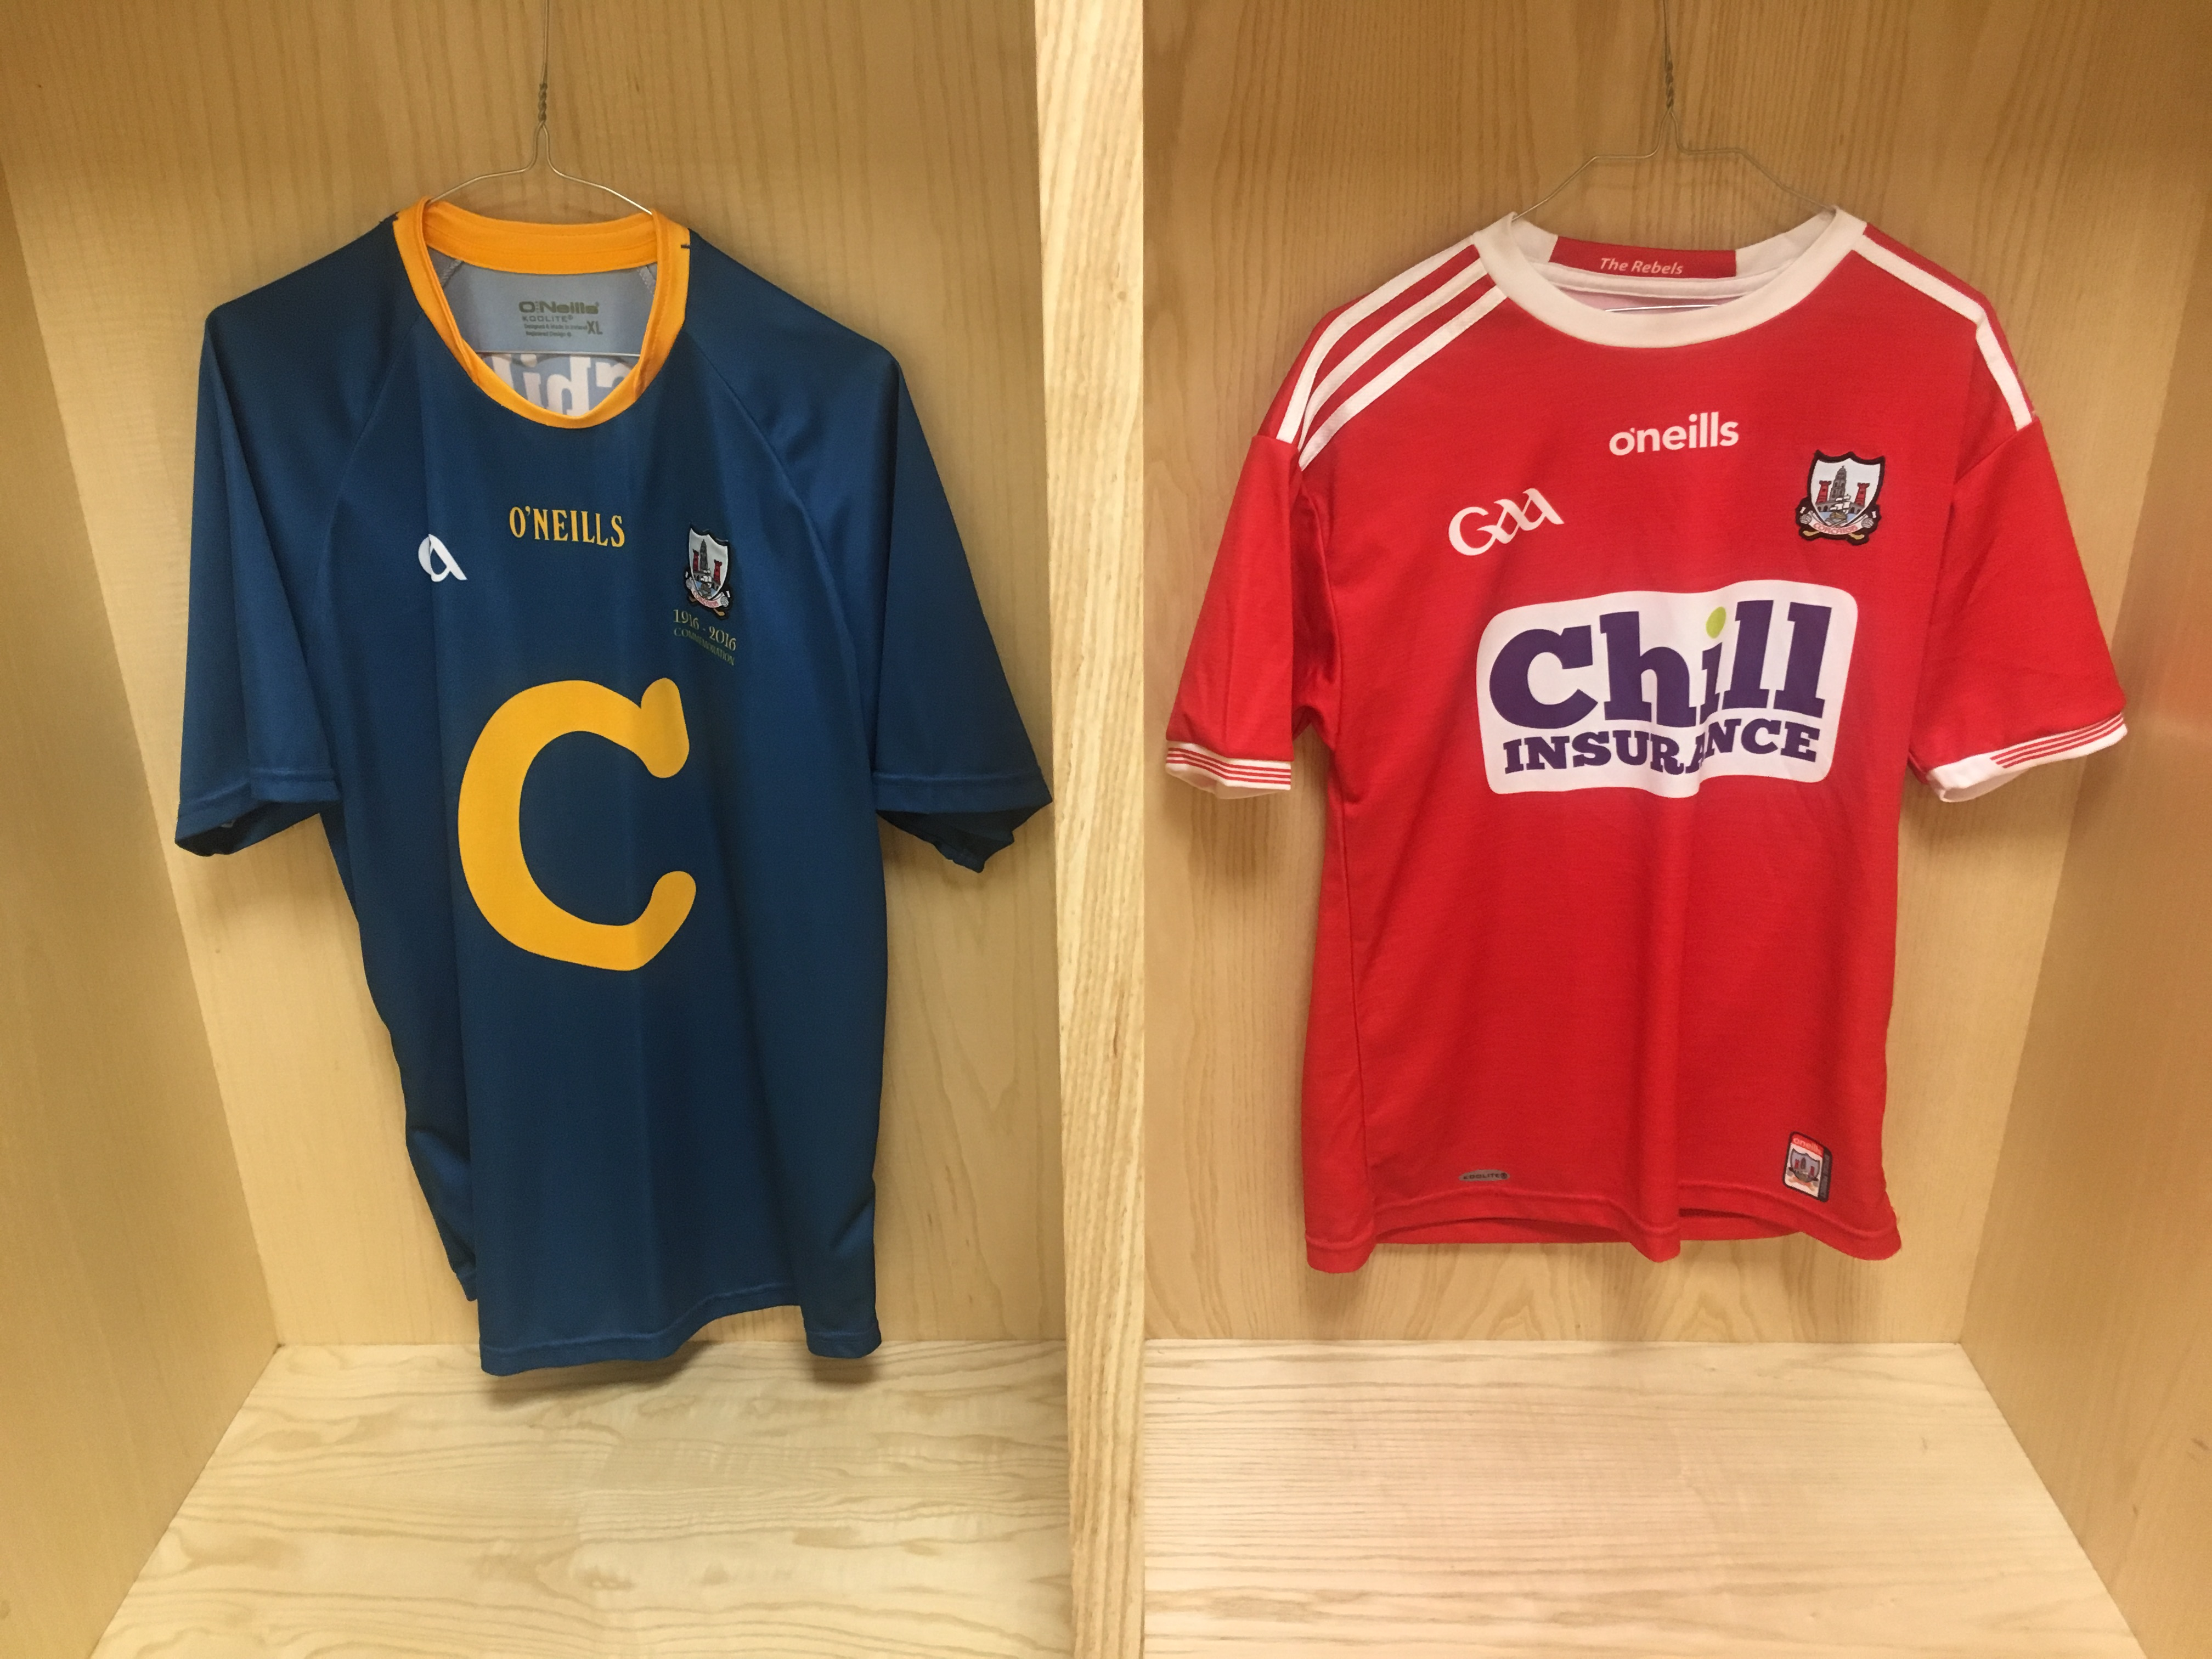 74e0ac9f In 2016, to mark the centenary on the 1916 rising the Cork hurlers wore a  replica of original blue and saffron jersey in a national league game  against ...